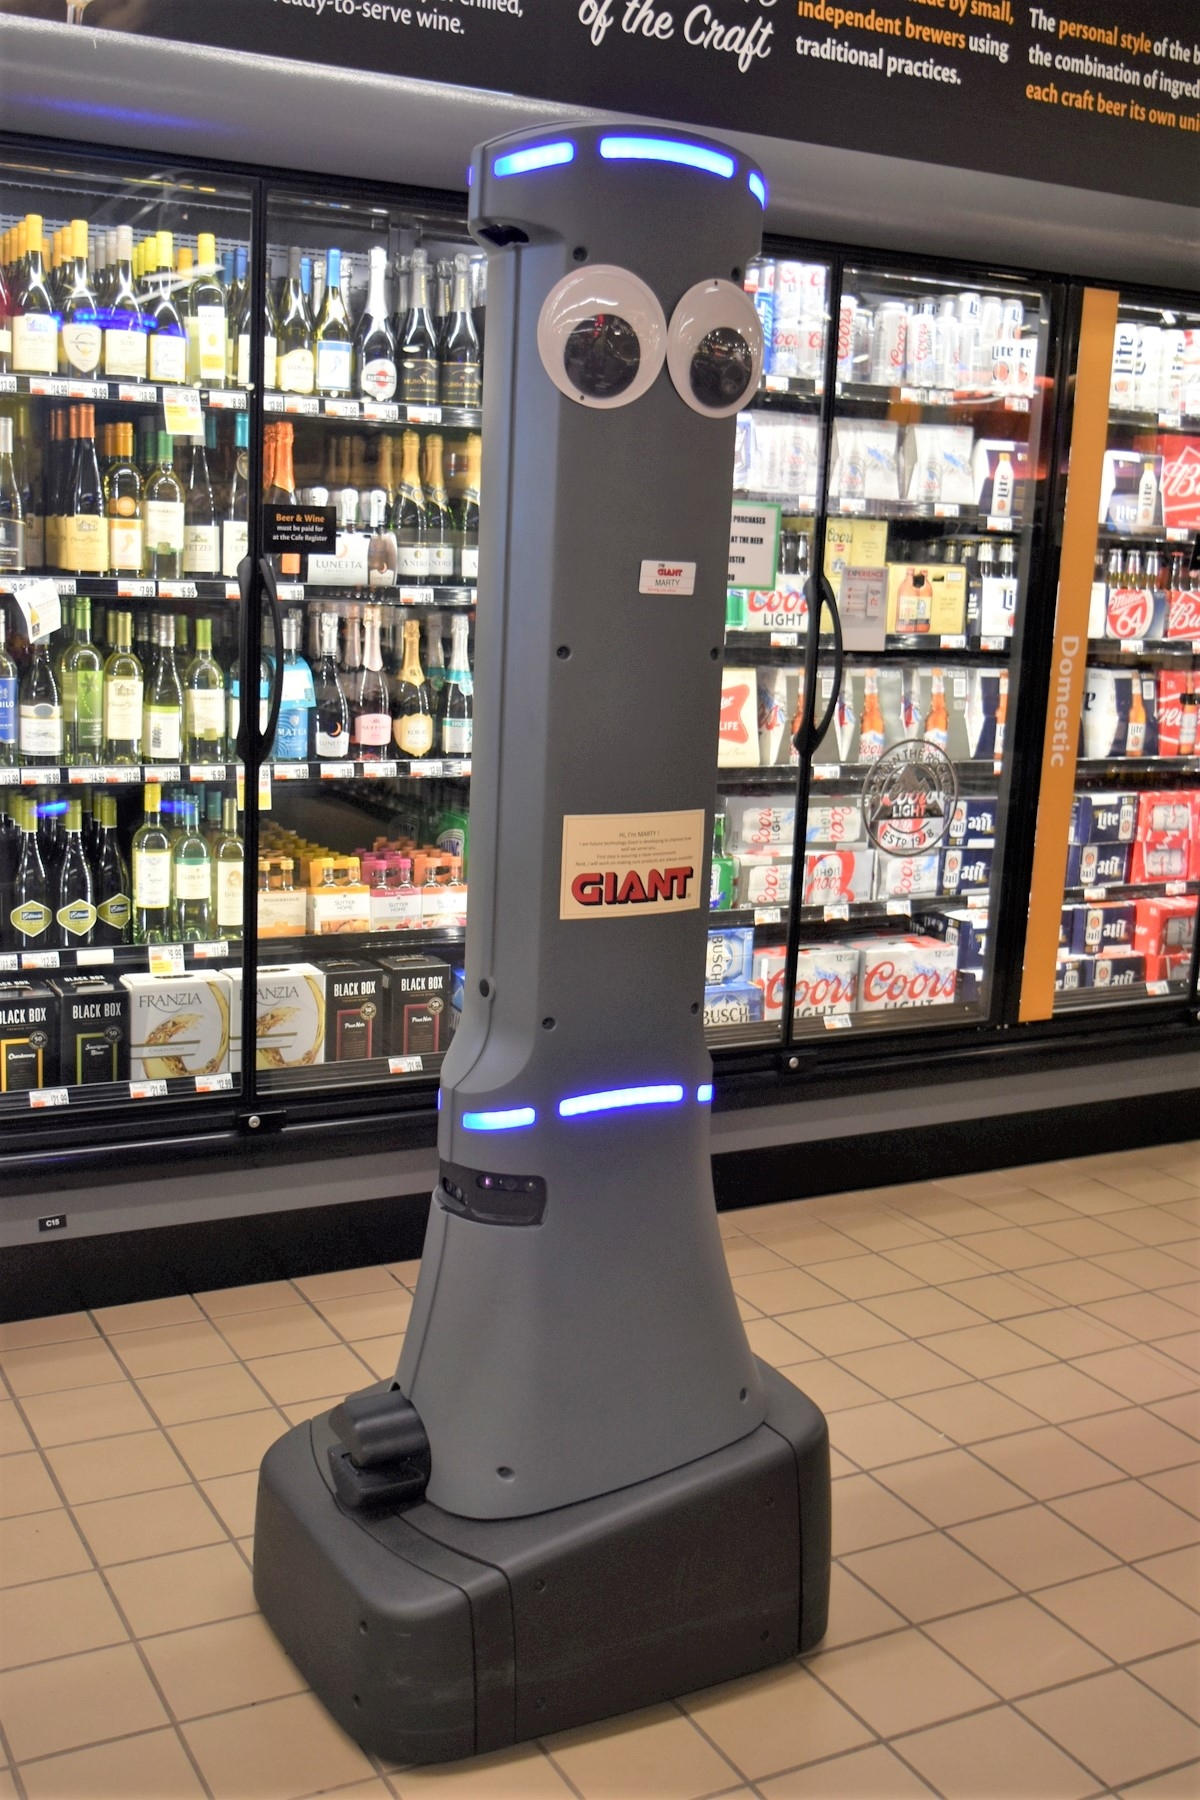 Giant_Food_Stores_Marty_Robot.jpg